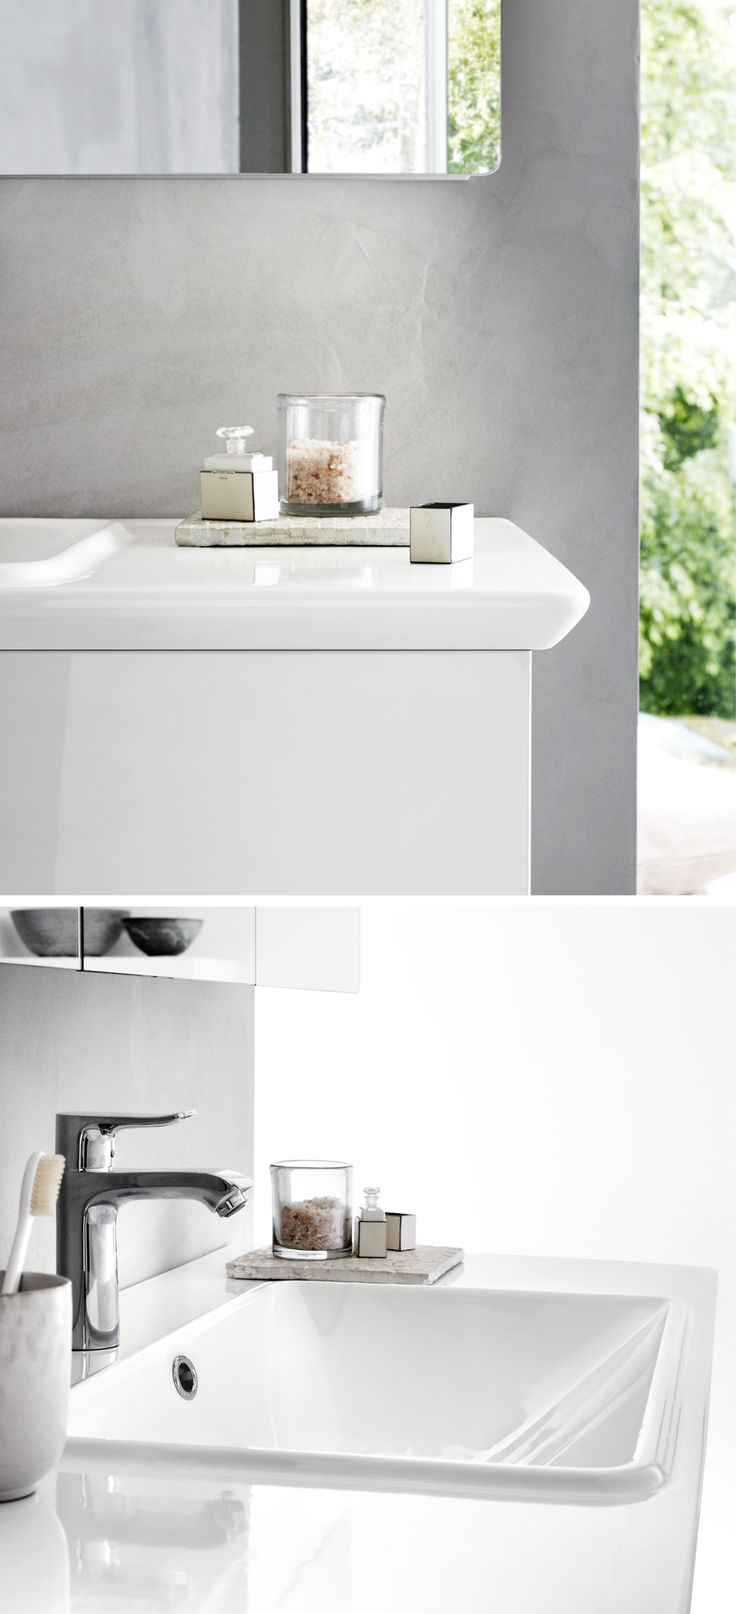 The elegant, rounded corners on the washbasin match the curve on the mirror cabinet.